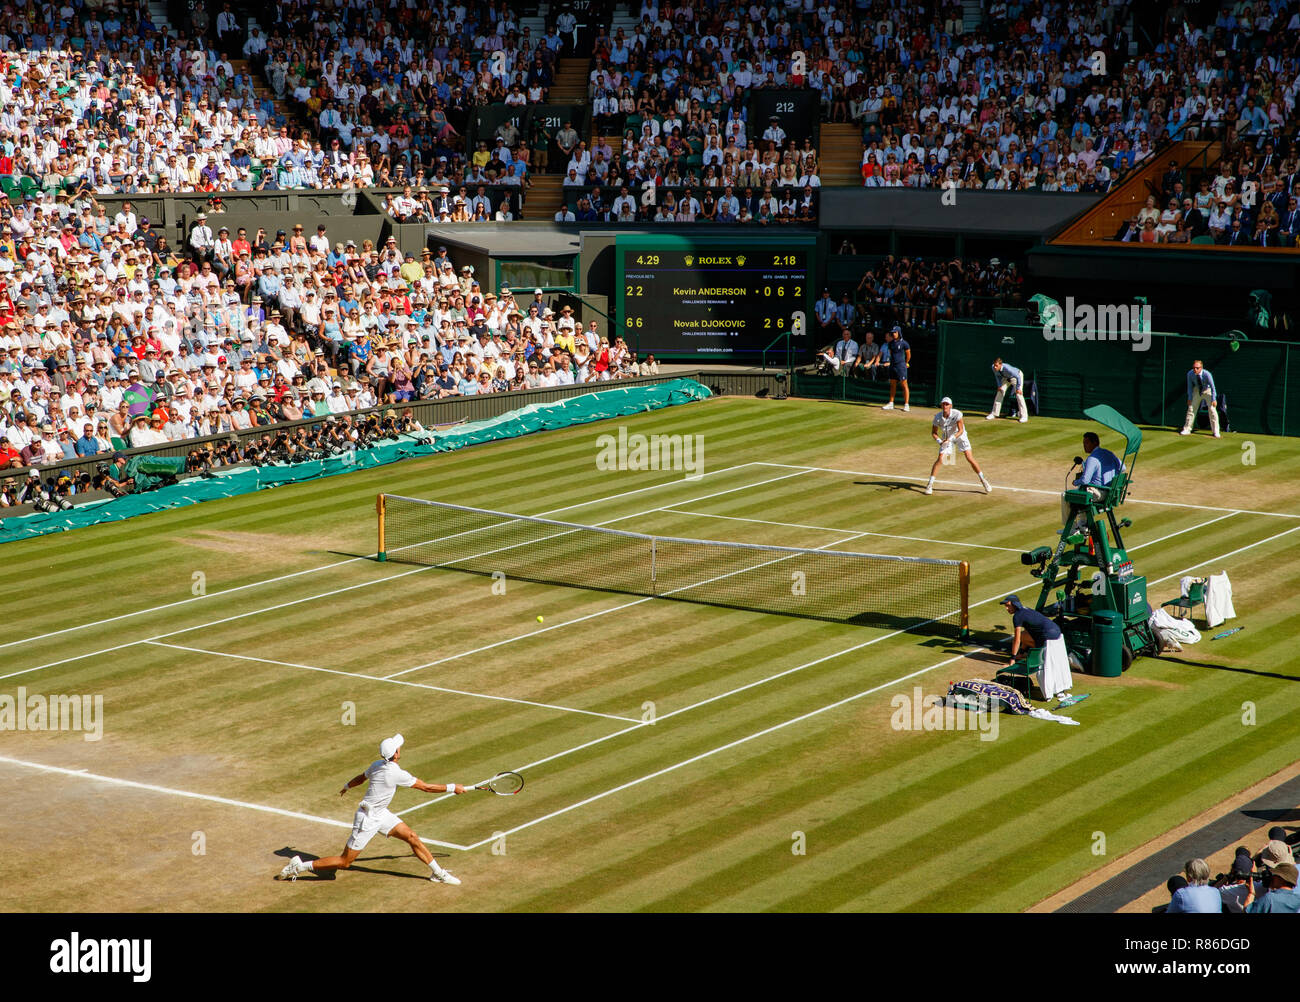 General wide view of Novak Djokovic of Serbia and Kevin Anderson of South Africa during the final of the Gentlemen's Singles during the Wimbledon Cham - Stock Image